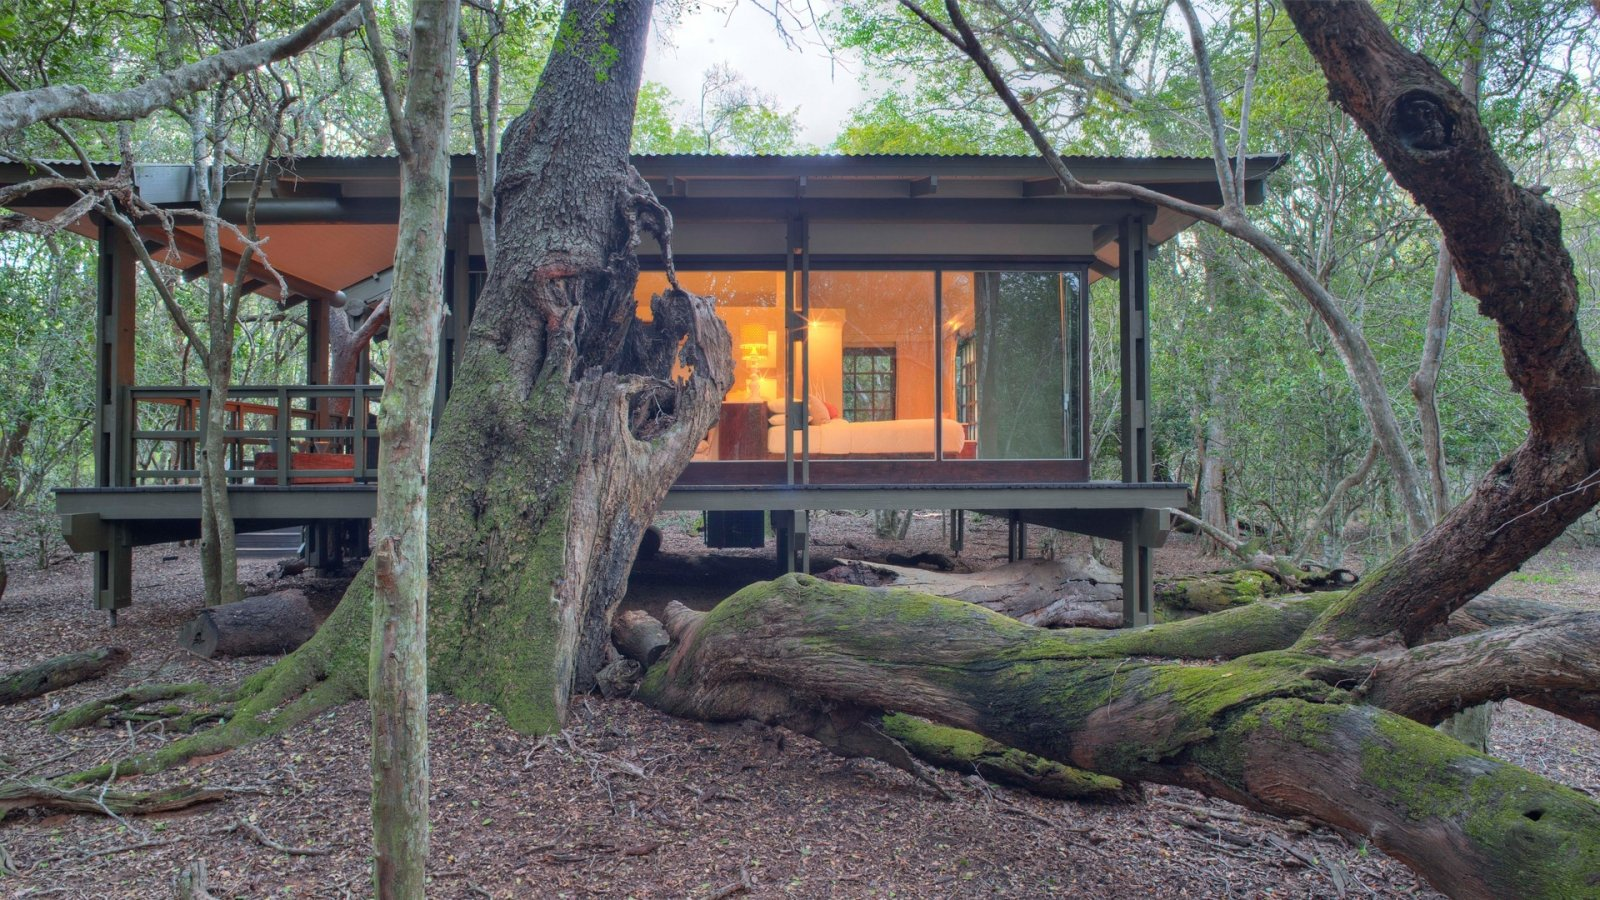 glass-suite-exterior-at-andbeyond-phinda-forest-lodge-on-a-luxury-safari-in-south-africa.jpg